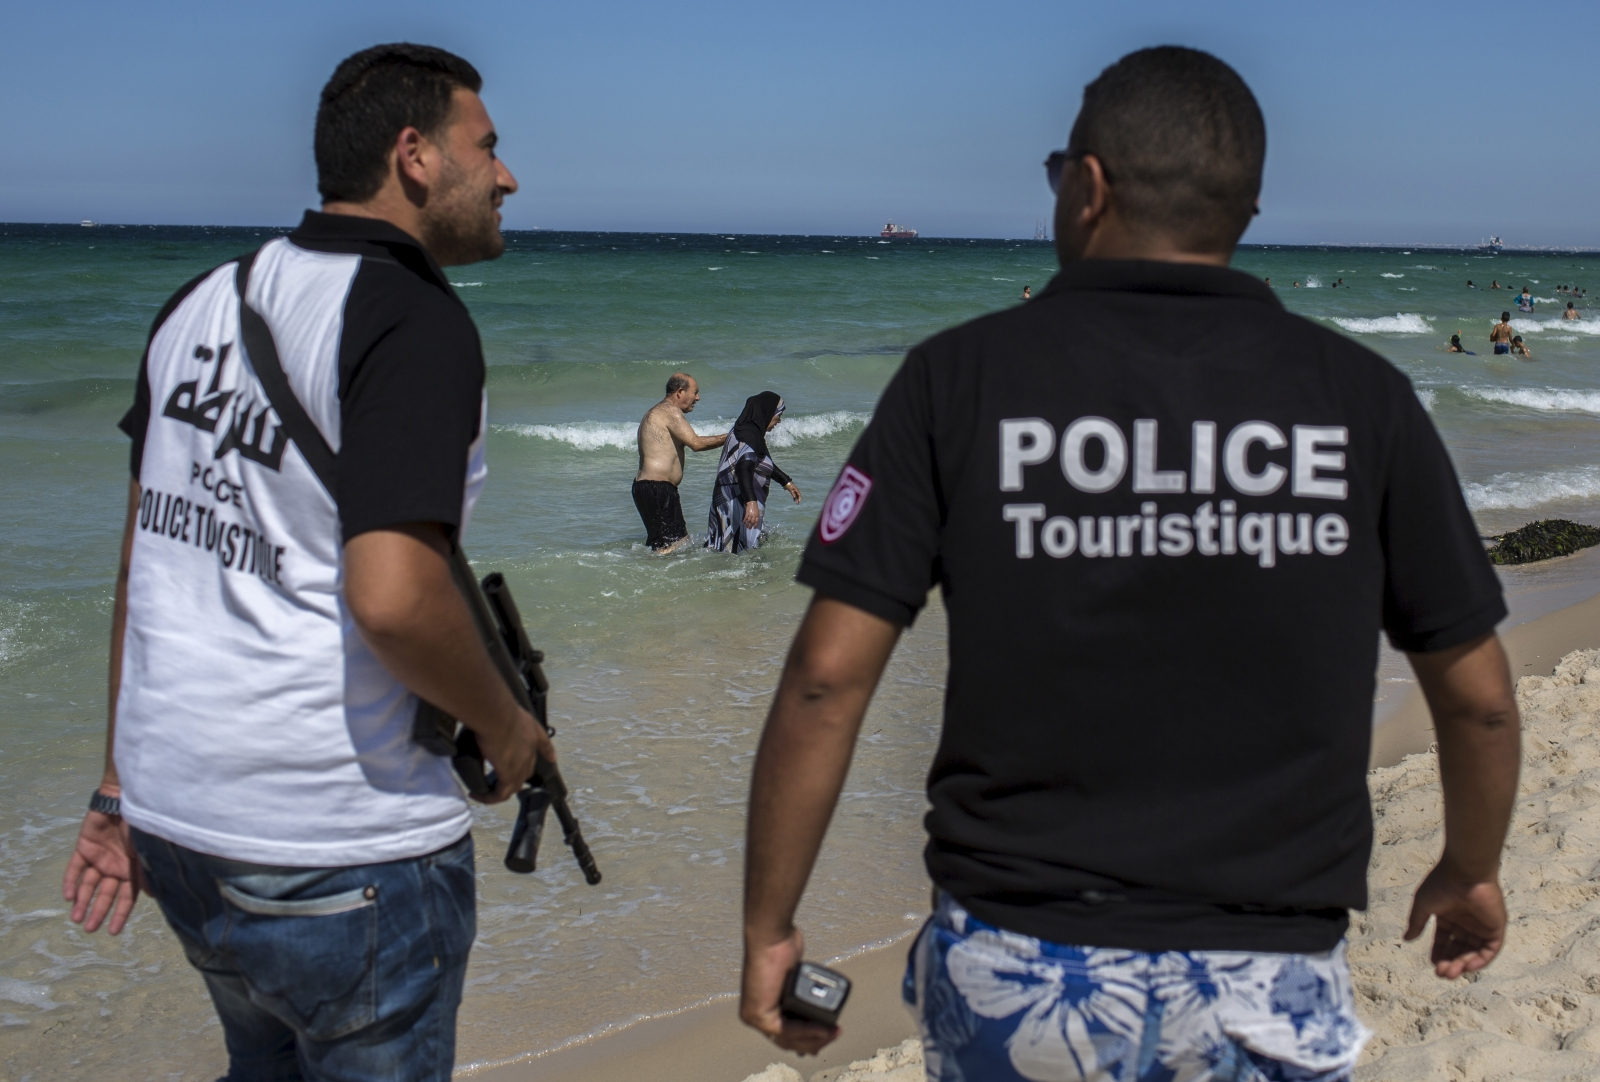 Tourist police officers